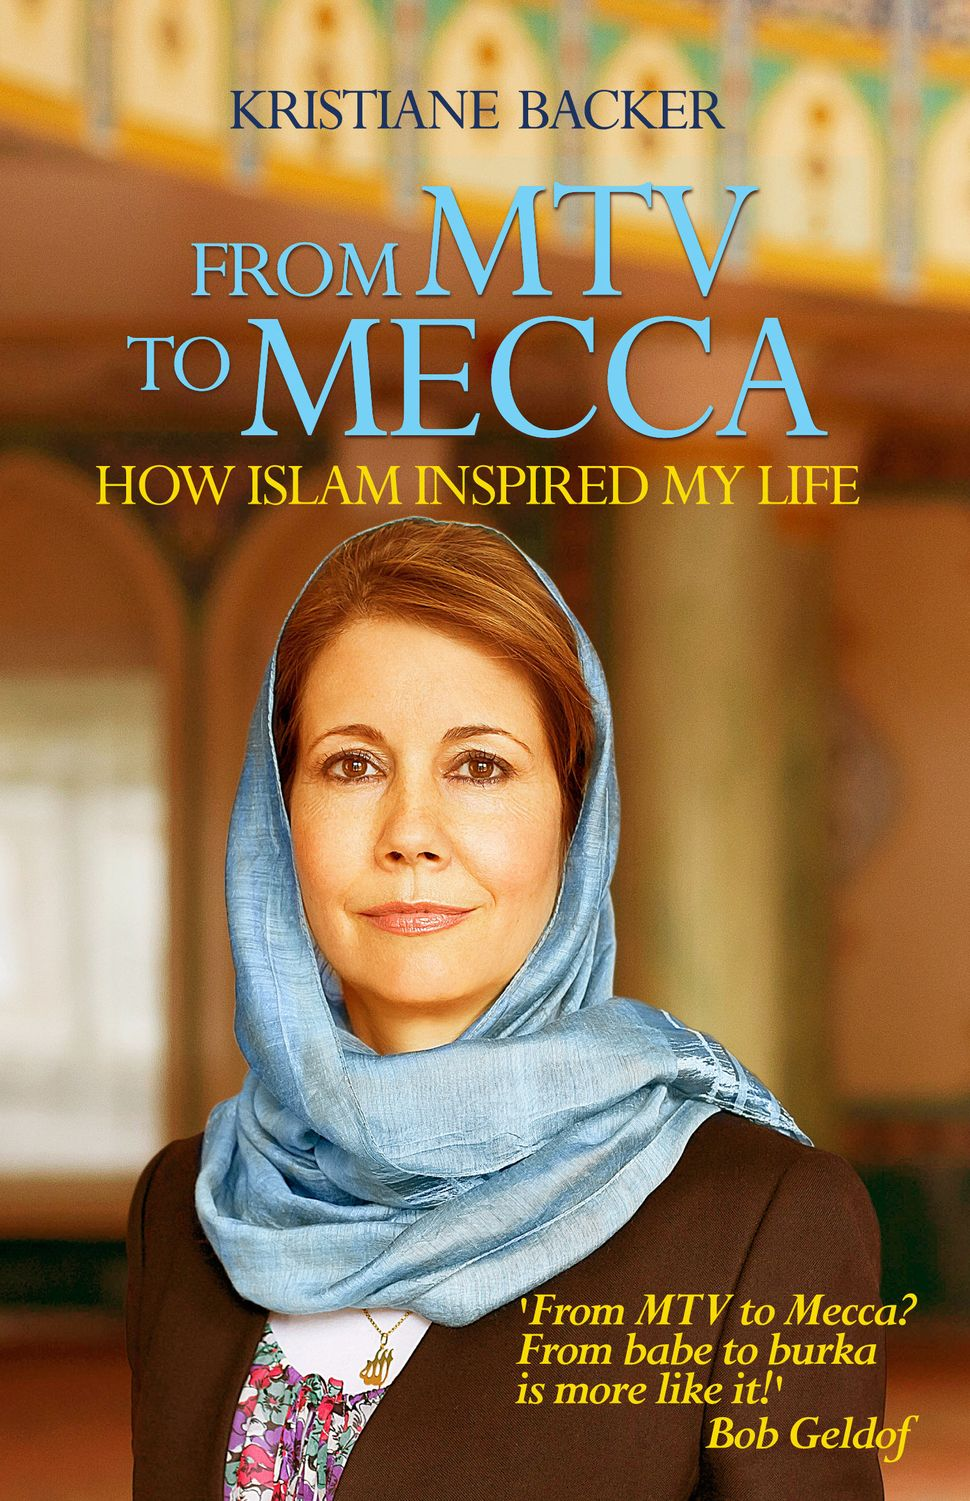 Kristiane Backer as featured on the cover of her book, From MTV to Mecca: How Islam Inspired My Life.